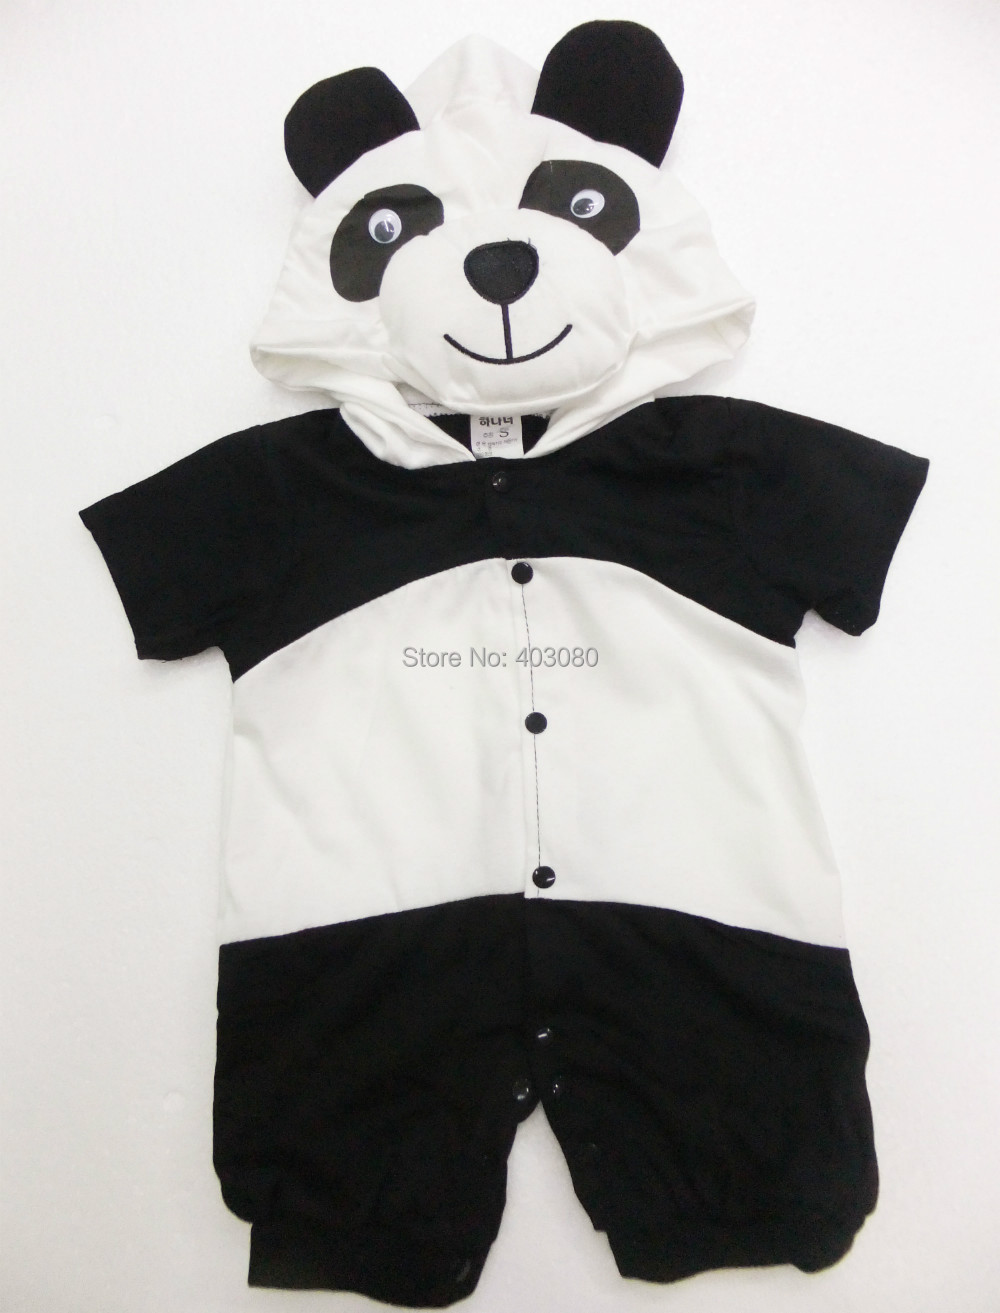 wholesale& retail short sleeve cotton clothing panda sculpt Baby crawl clothing kid clothes Rompers panda plays clothing SZ-S-XL